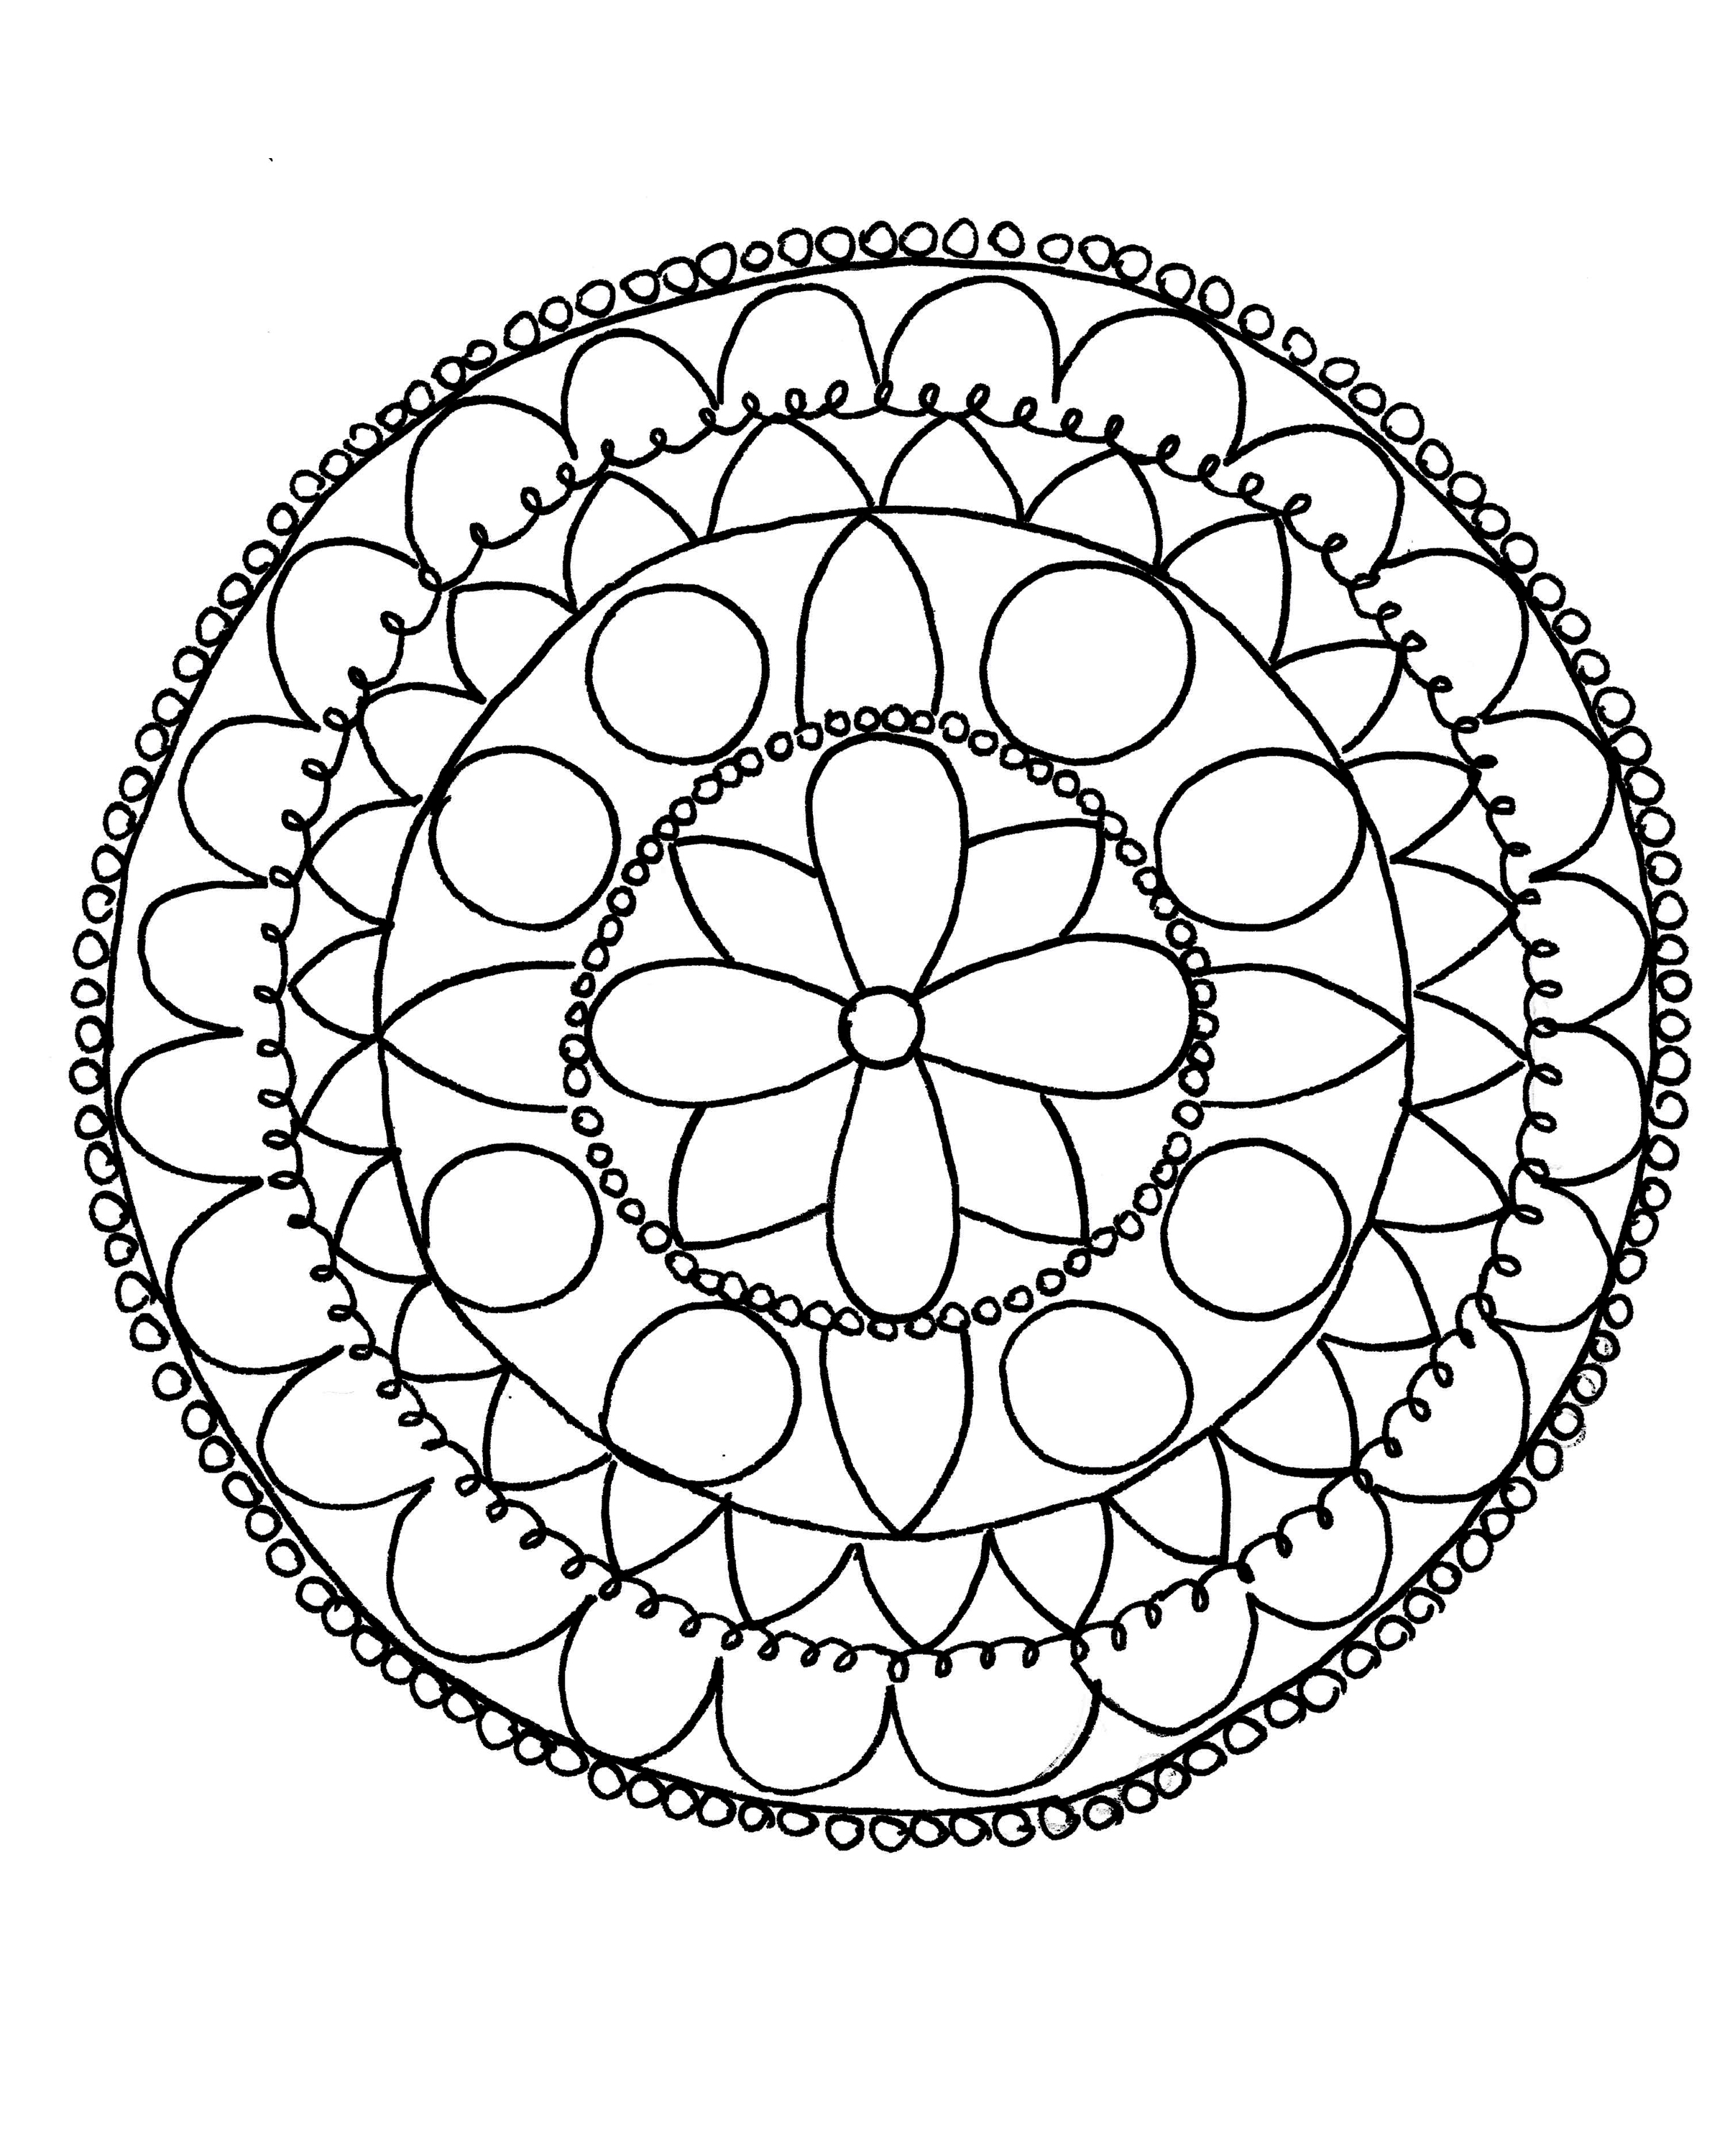 Mandala Design Coloring Pages At Getdrawings Com Free For Personal